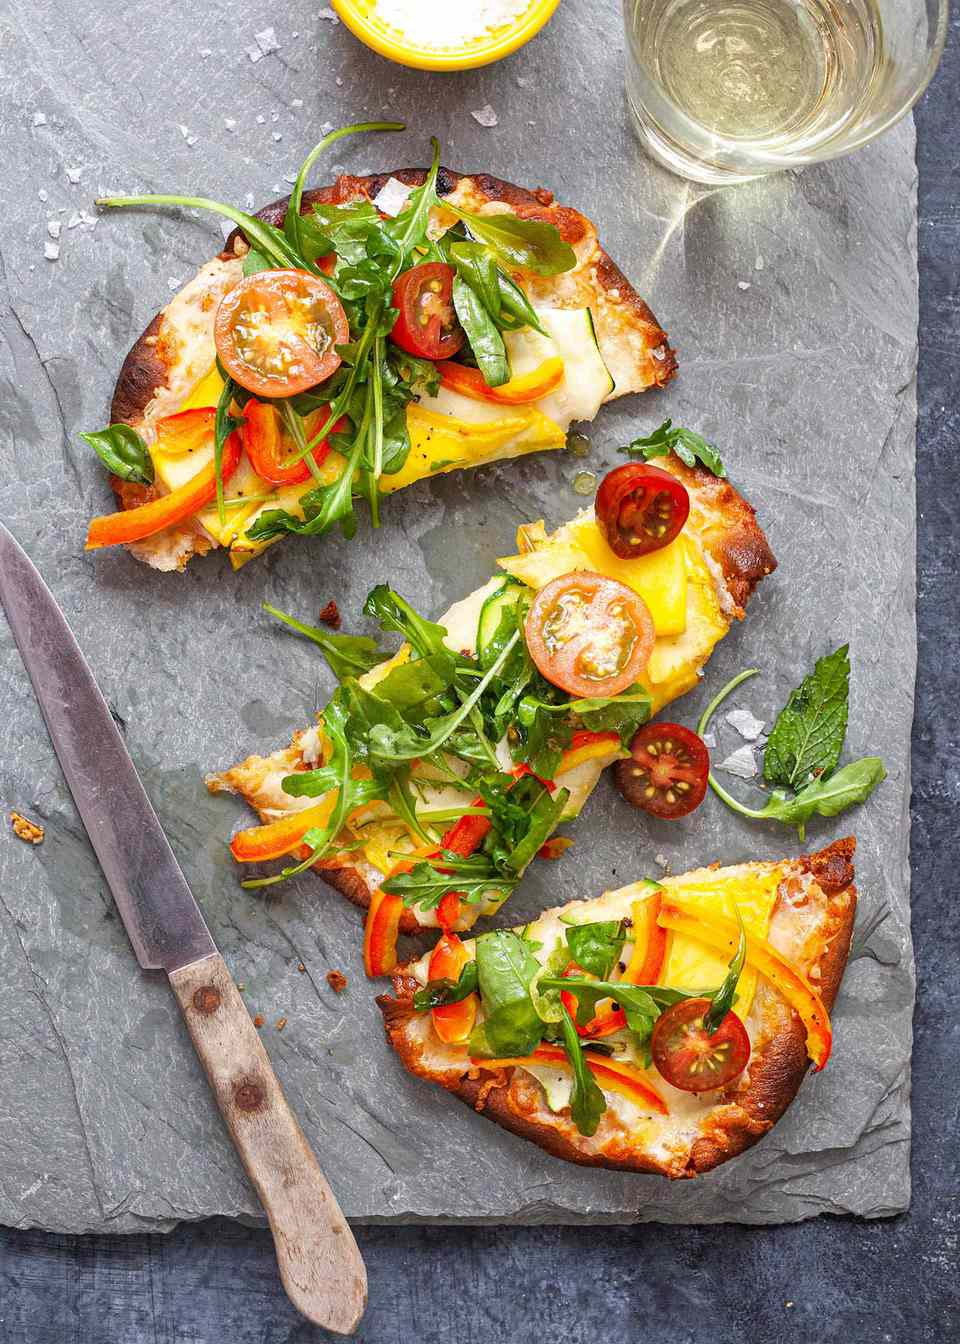 Easy Vegetable Pizza - flatbread pizza piled high with vegetables. Cut into slices on a parchment paper with a wooden handled knife nearby